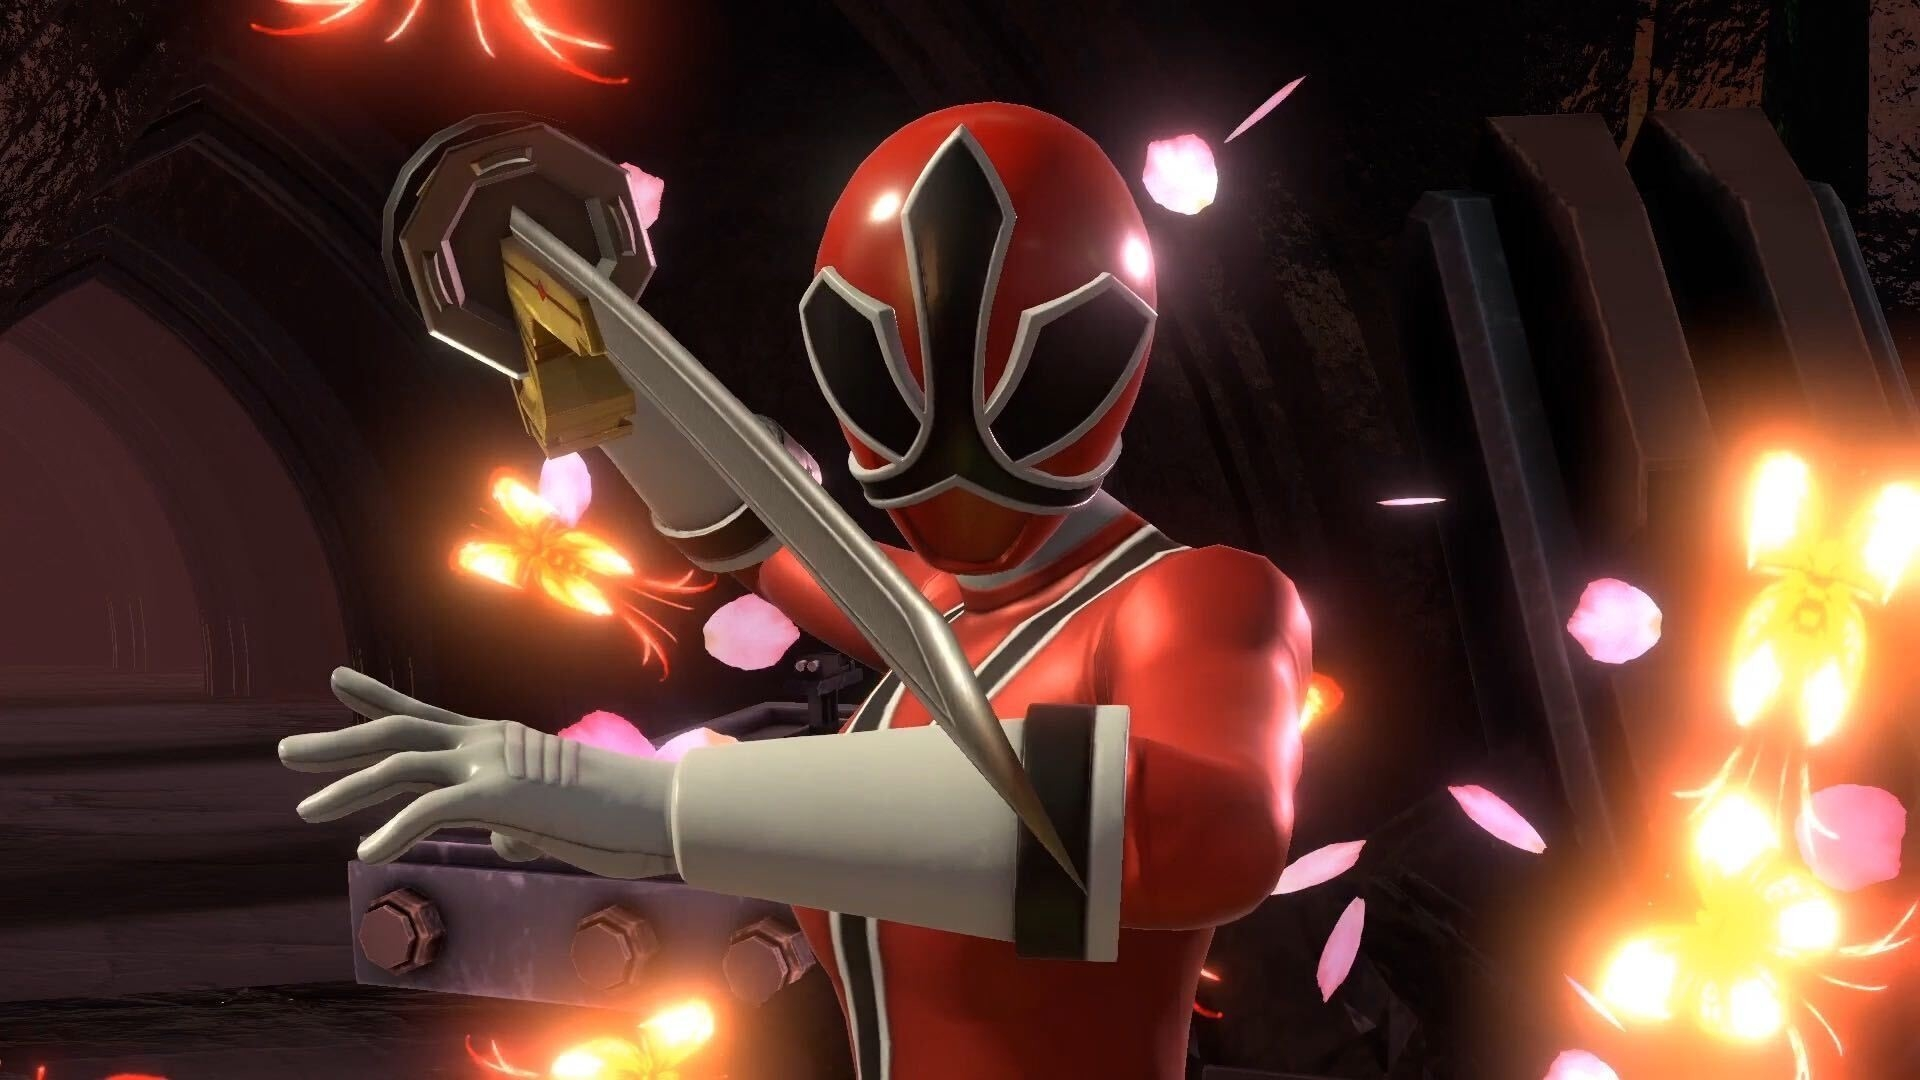 NWay Asks Power Rangers: Battle For The Grid Community About Interest In A Street Fighter Collaboration